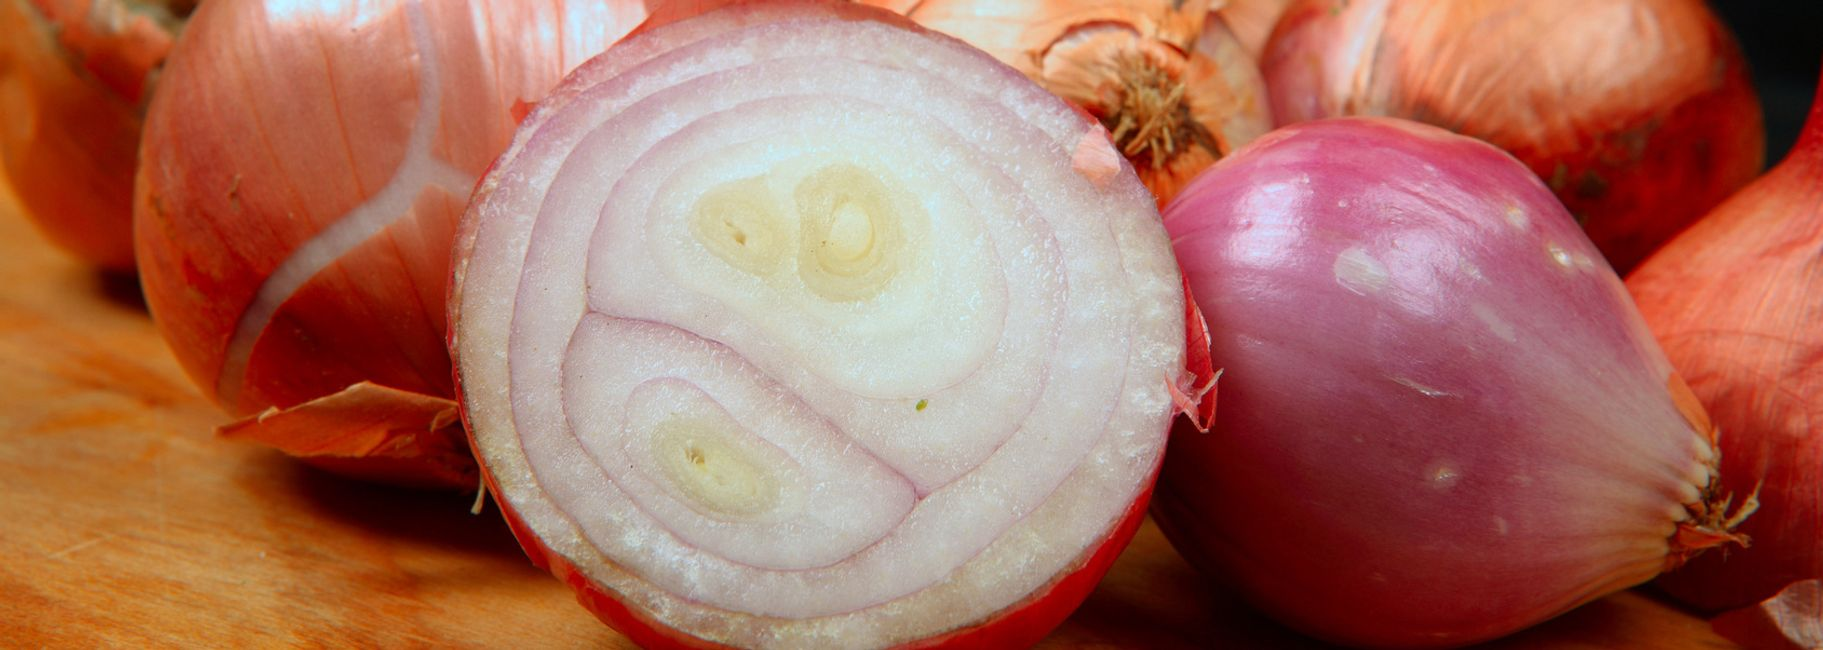 The Best Way to Cut an Onion